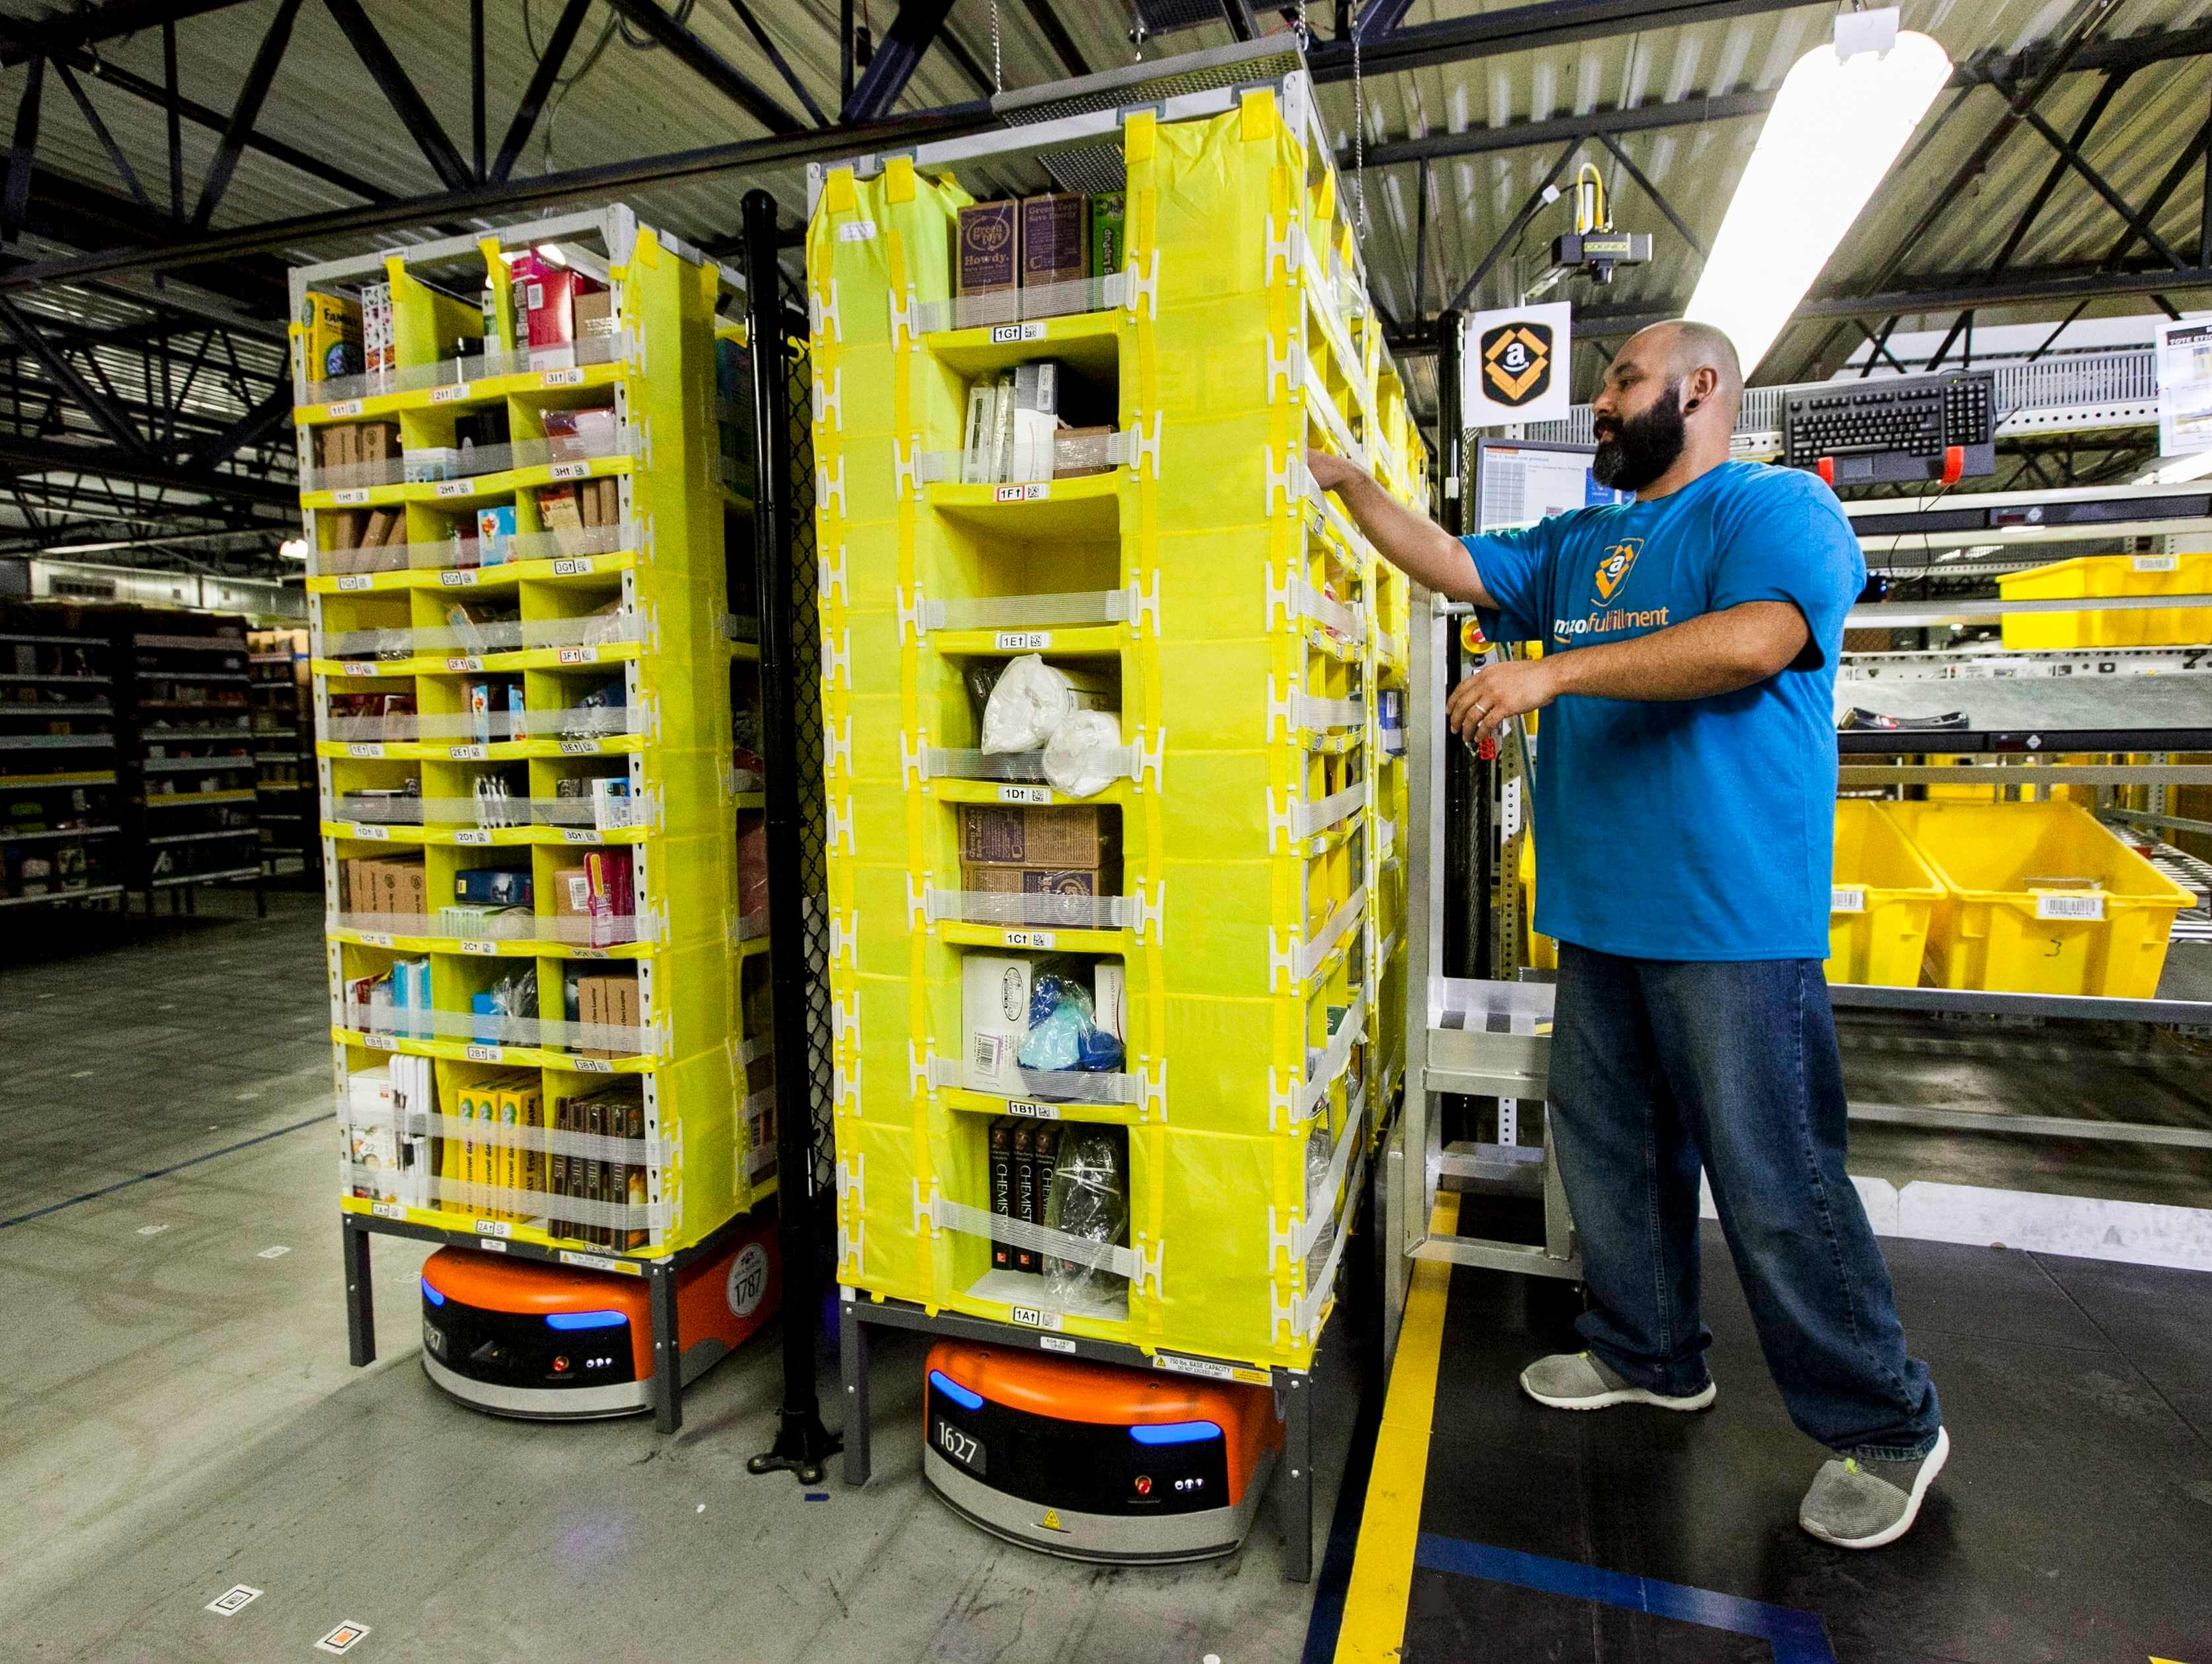 Amazon wants to make working in its warehouses less tedious by turning it into a game